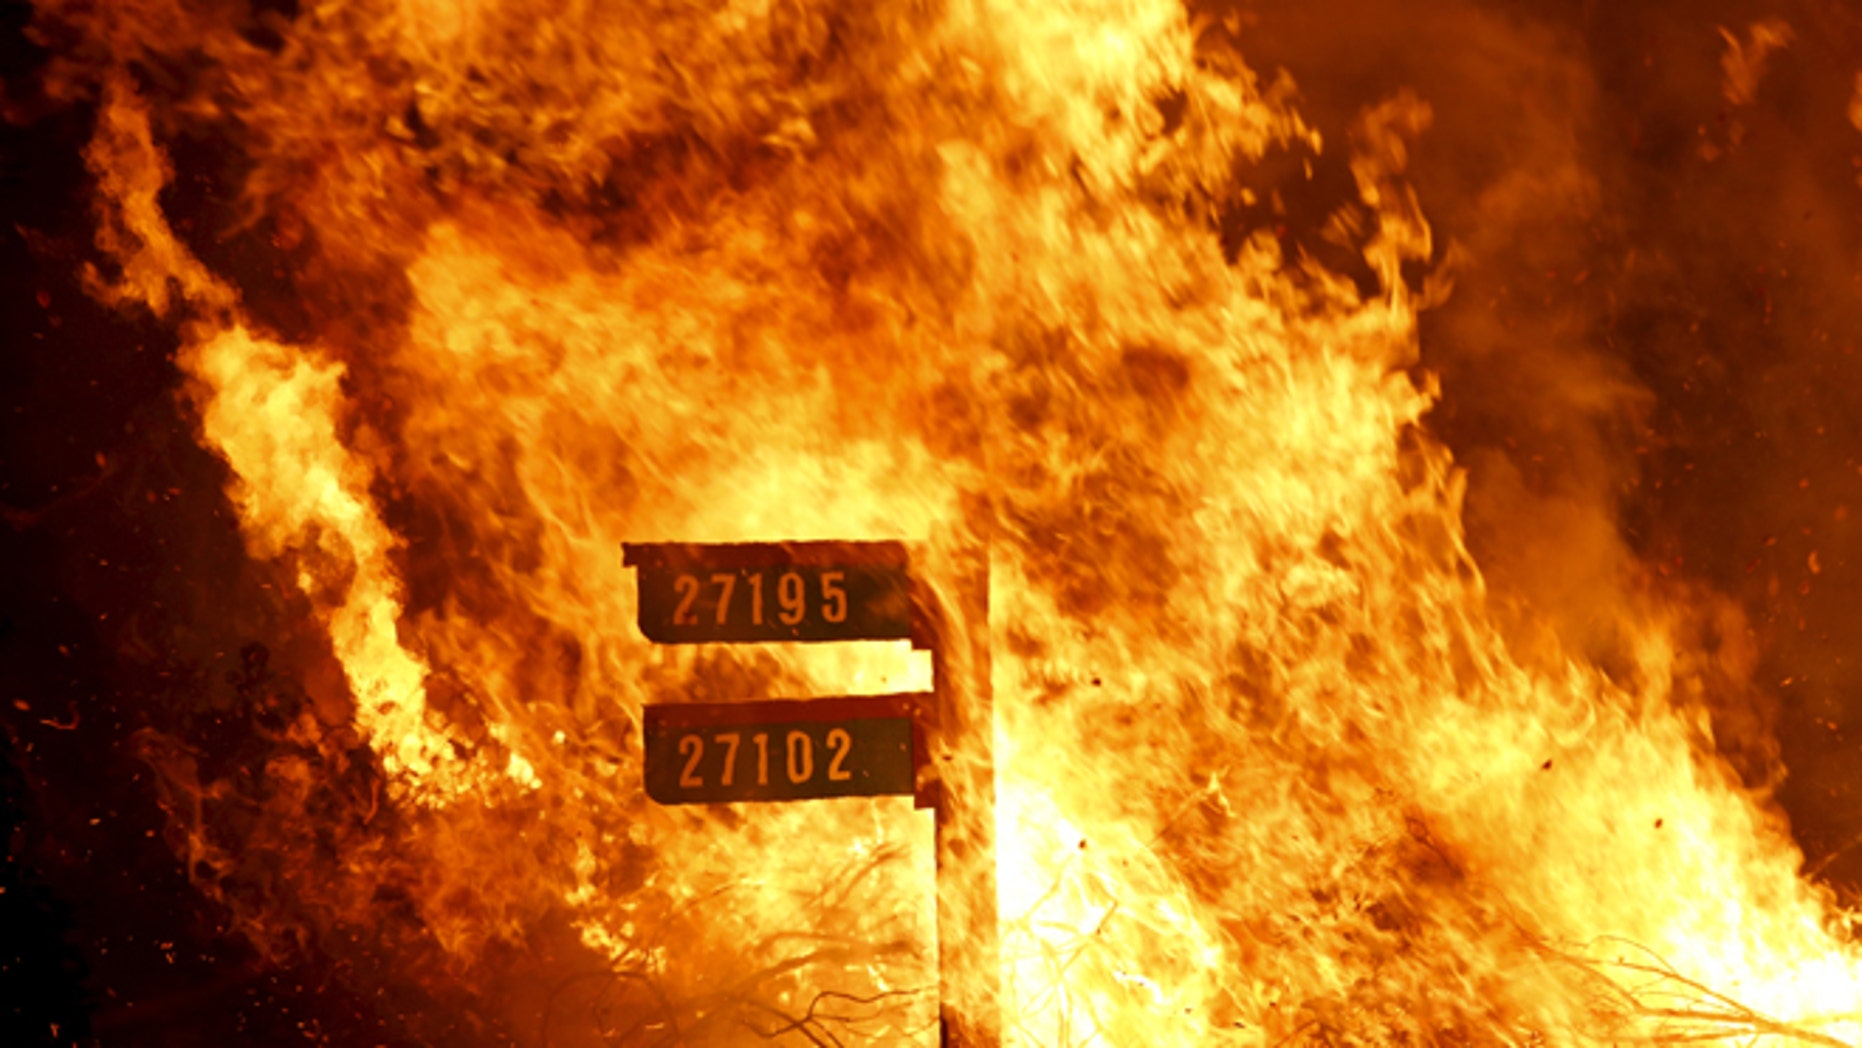 Flames consume a sign containing addresses to homes along Morgan Valley Road in Lake County, California, in this August 12, 2015 file photo. (Photo: REUTERS/Robert Galbraith/Files)